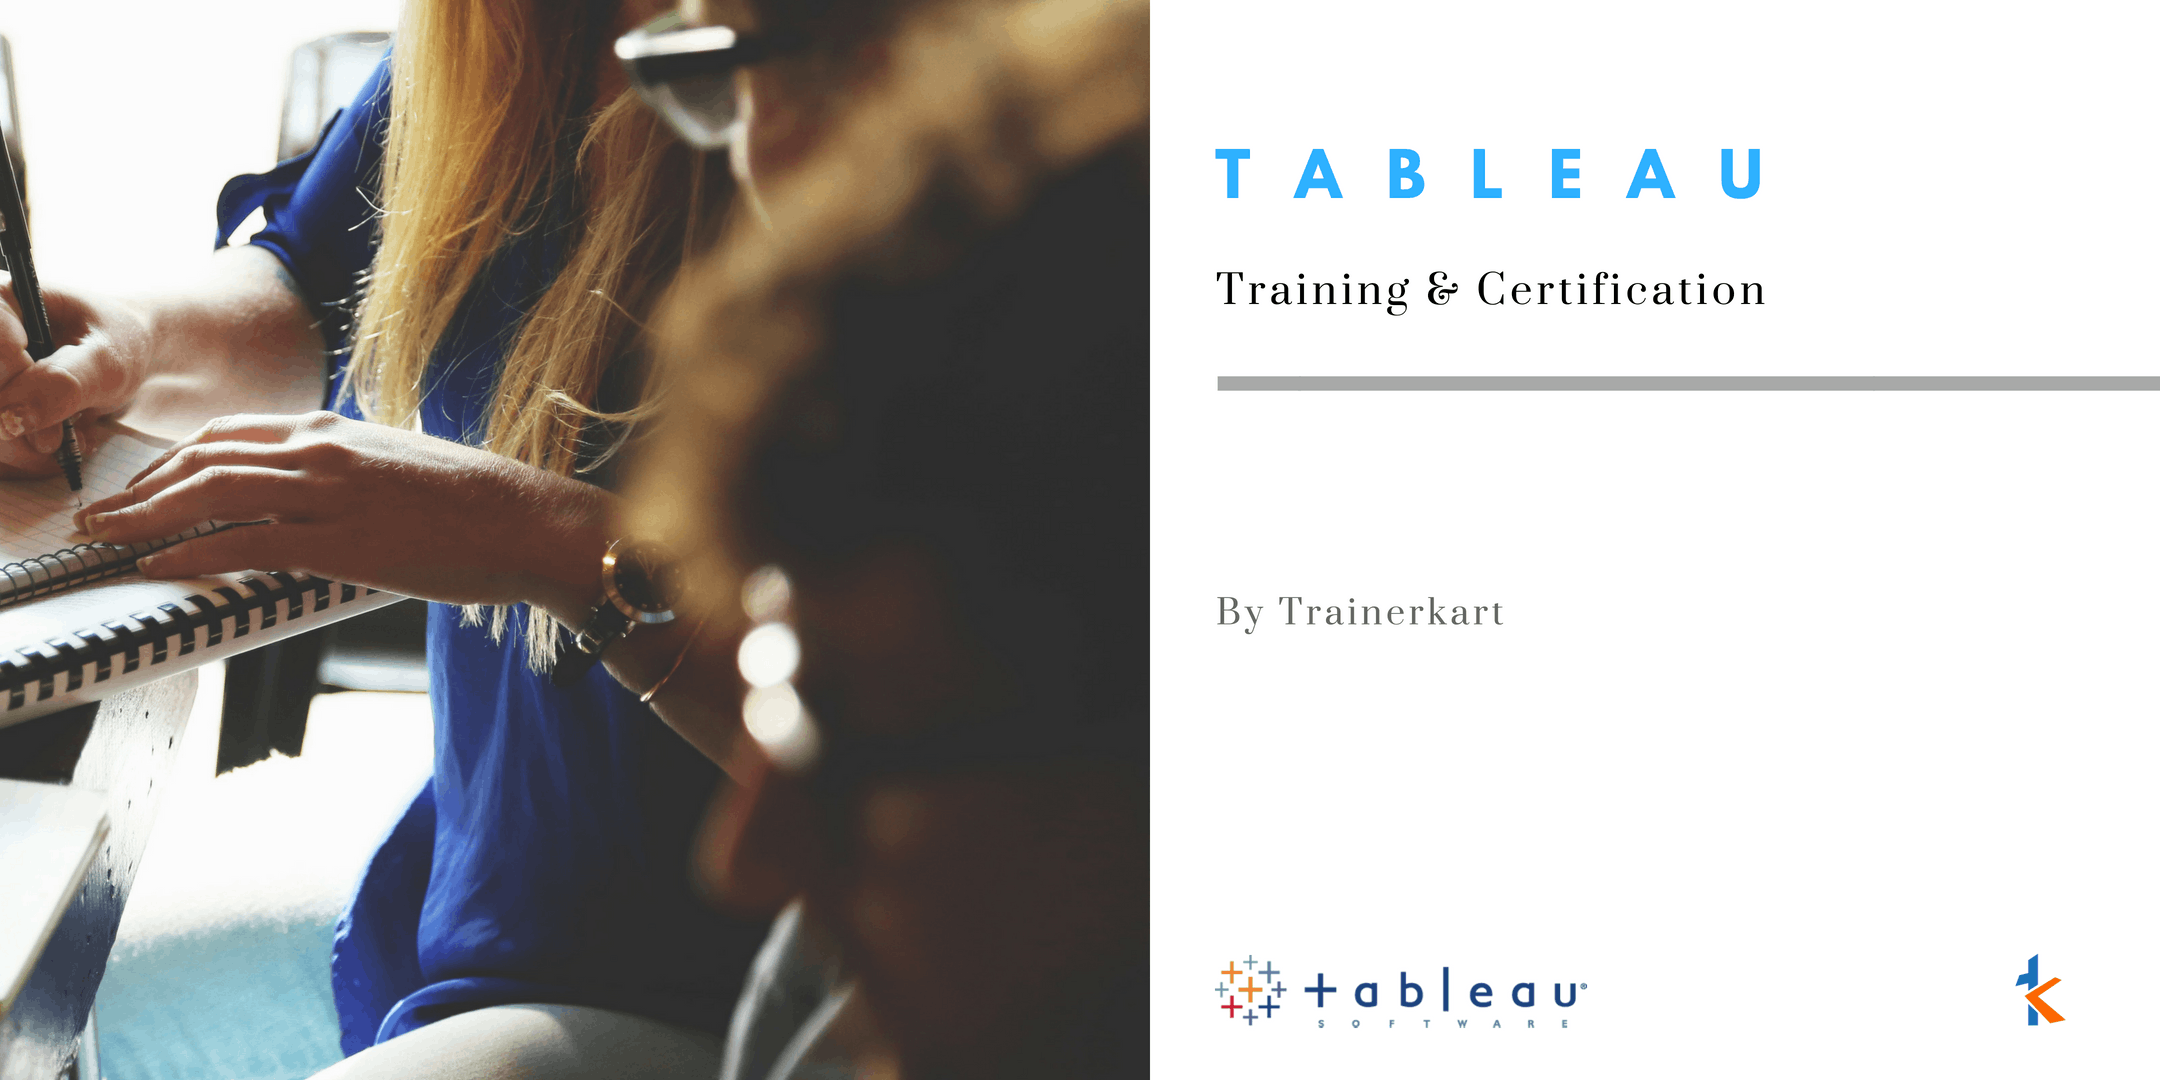 Tableau Training & Certification in Monroe, L